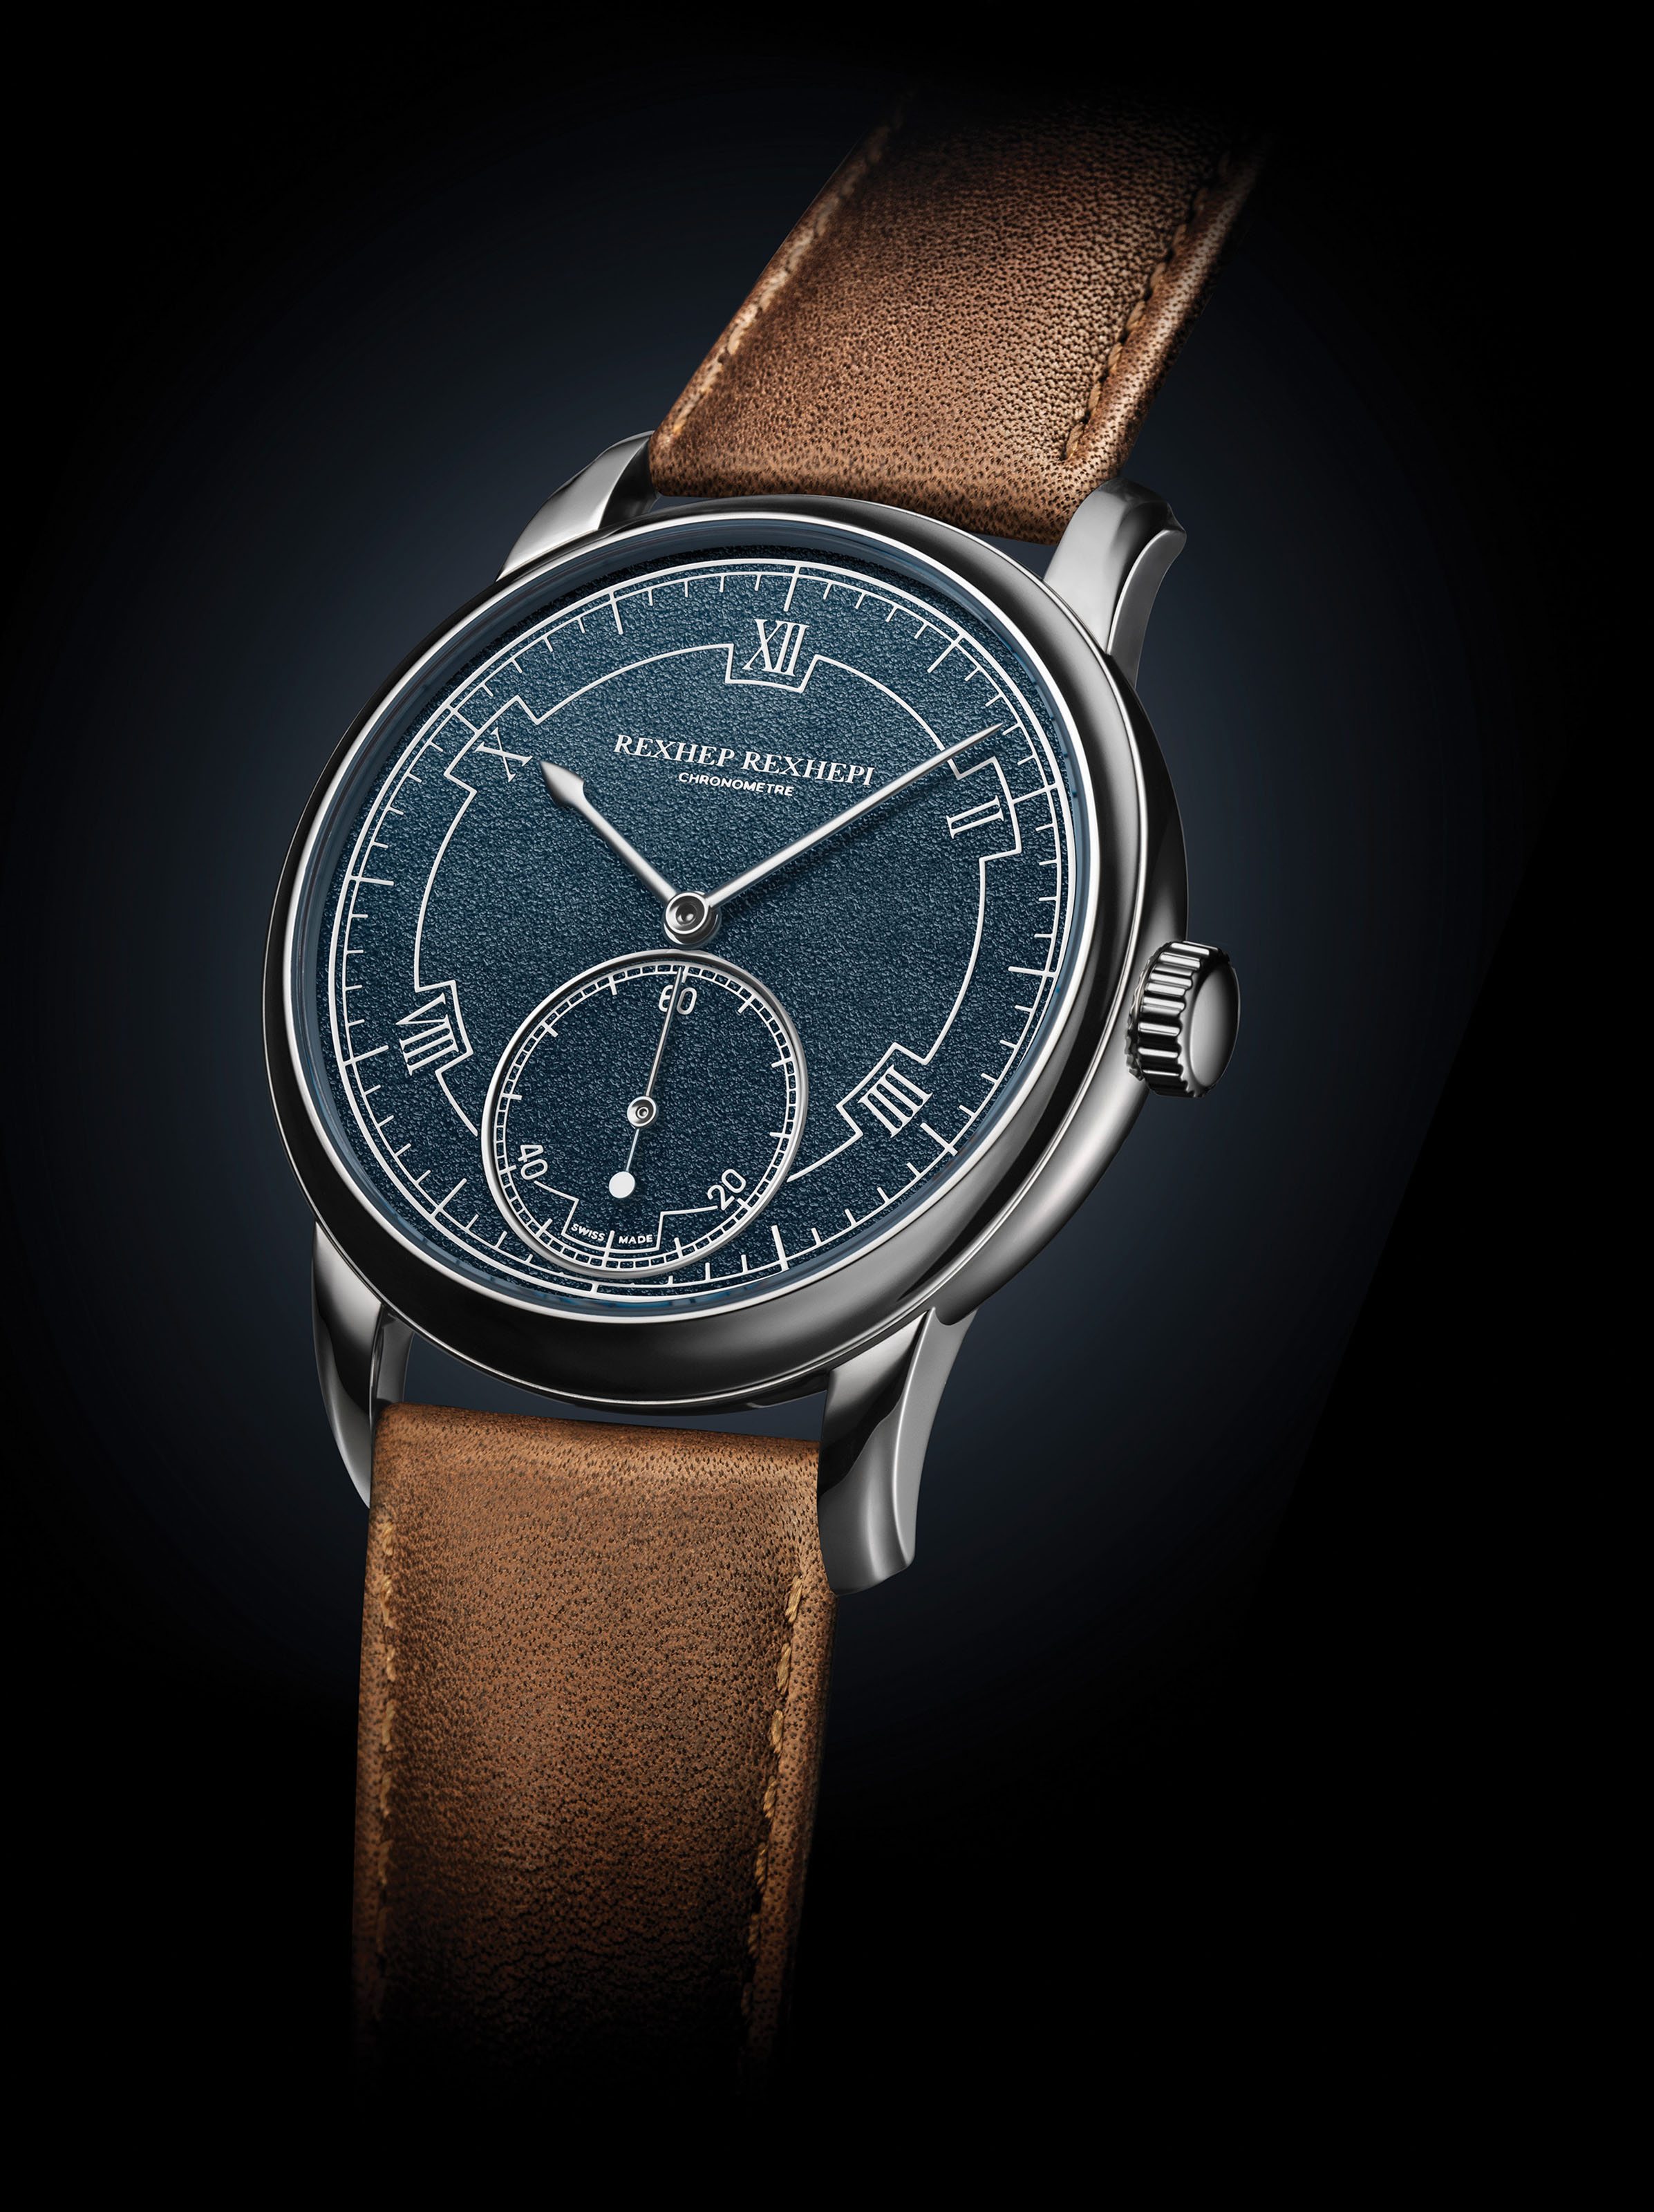 Akrivia. Chronomètre Contemporain Only Watch with unique blue-grey enamel dial and hand-hammered surface. Signed Rexhep Rexhepi, platinum case by J.P. Hagmann. Sold for CHF 360,000 in the Only Watch auction on 9 November 2019 at Christie's in Geneva